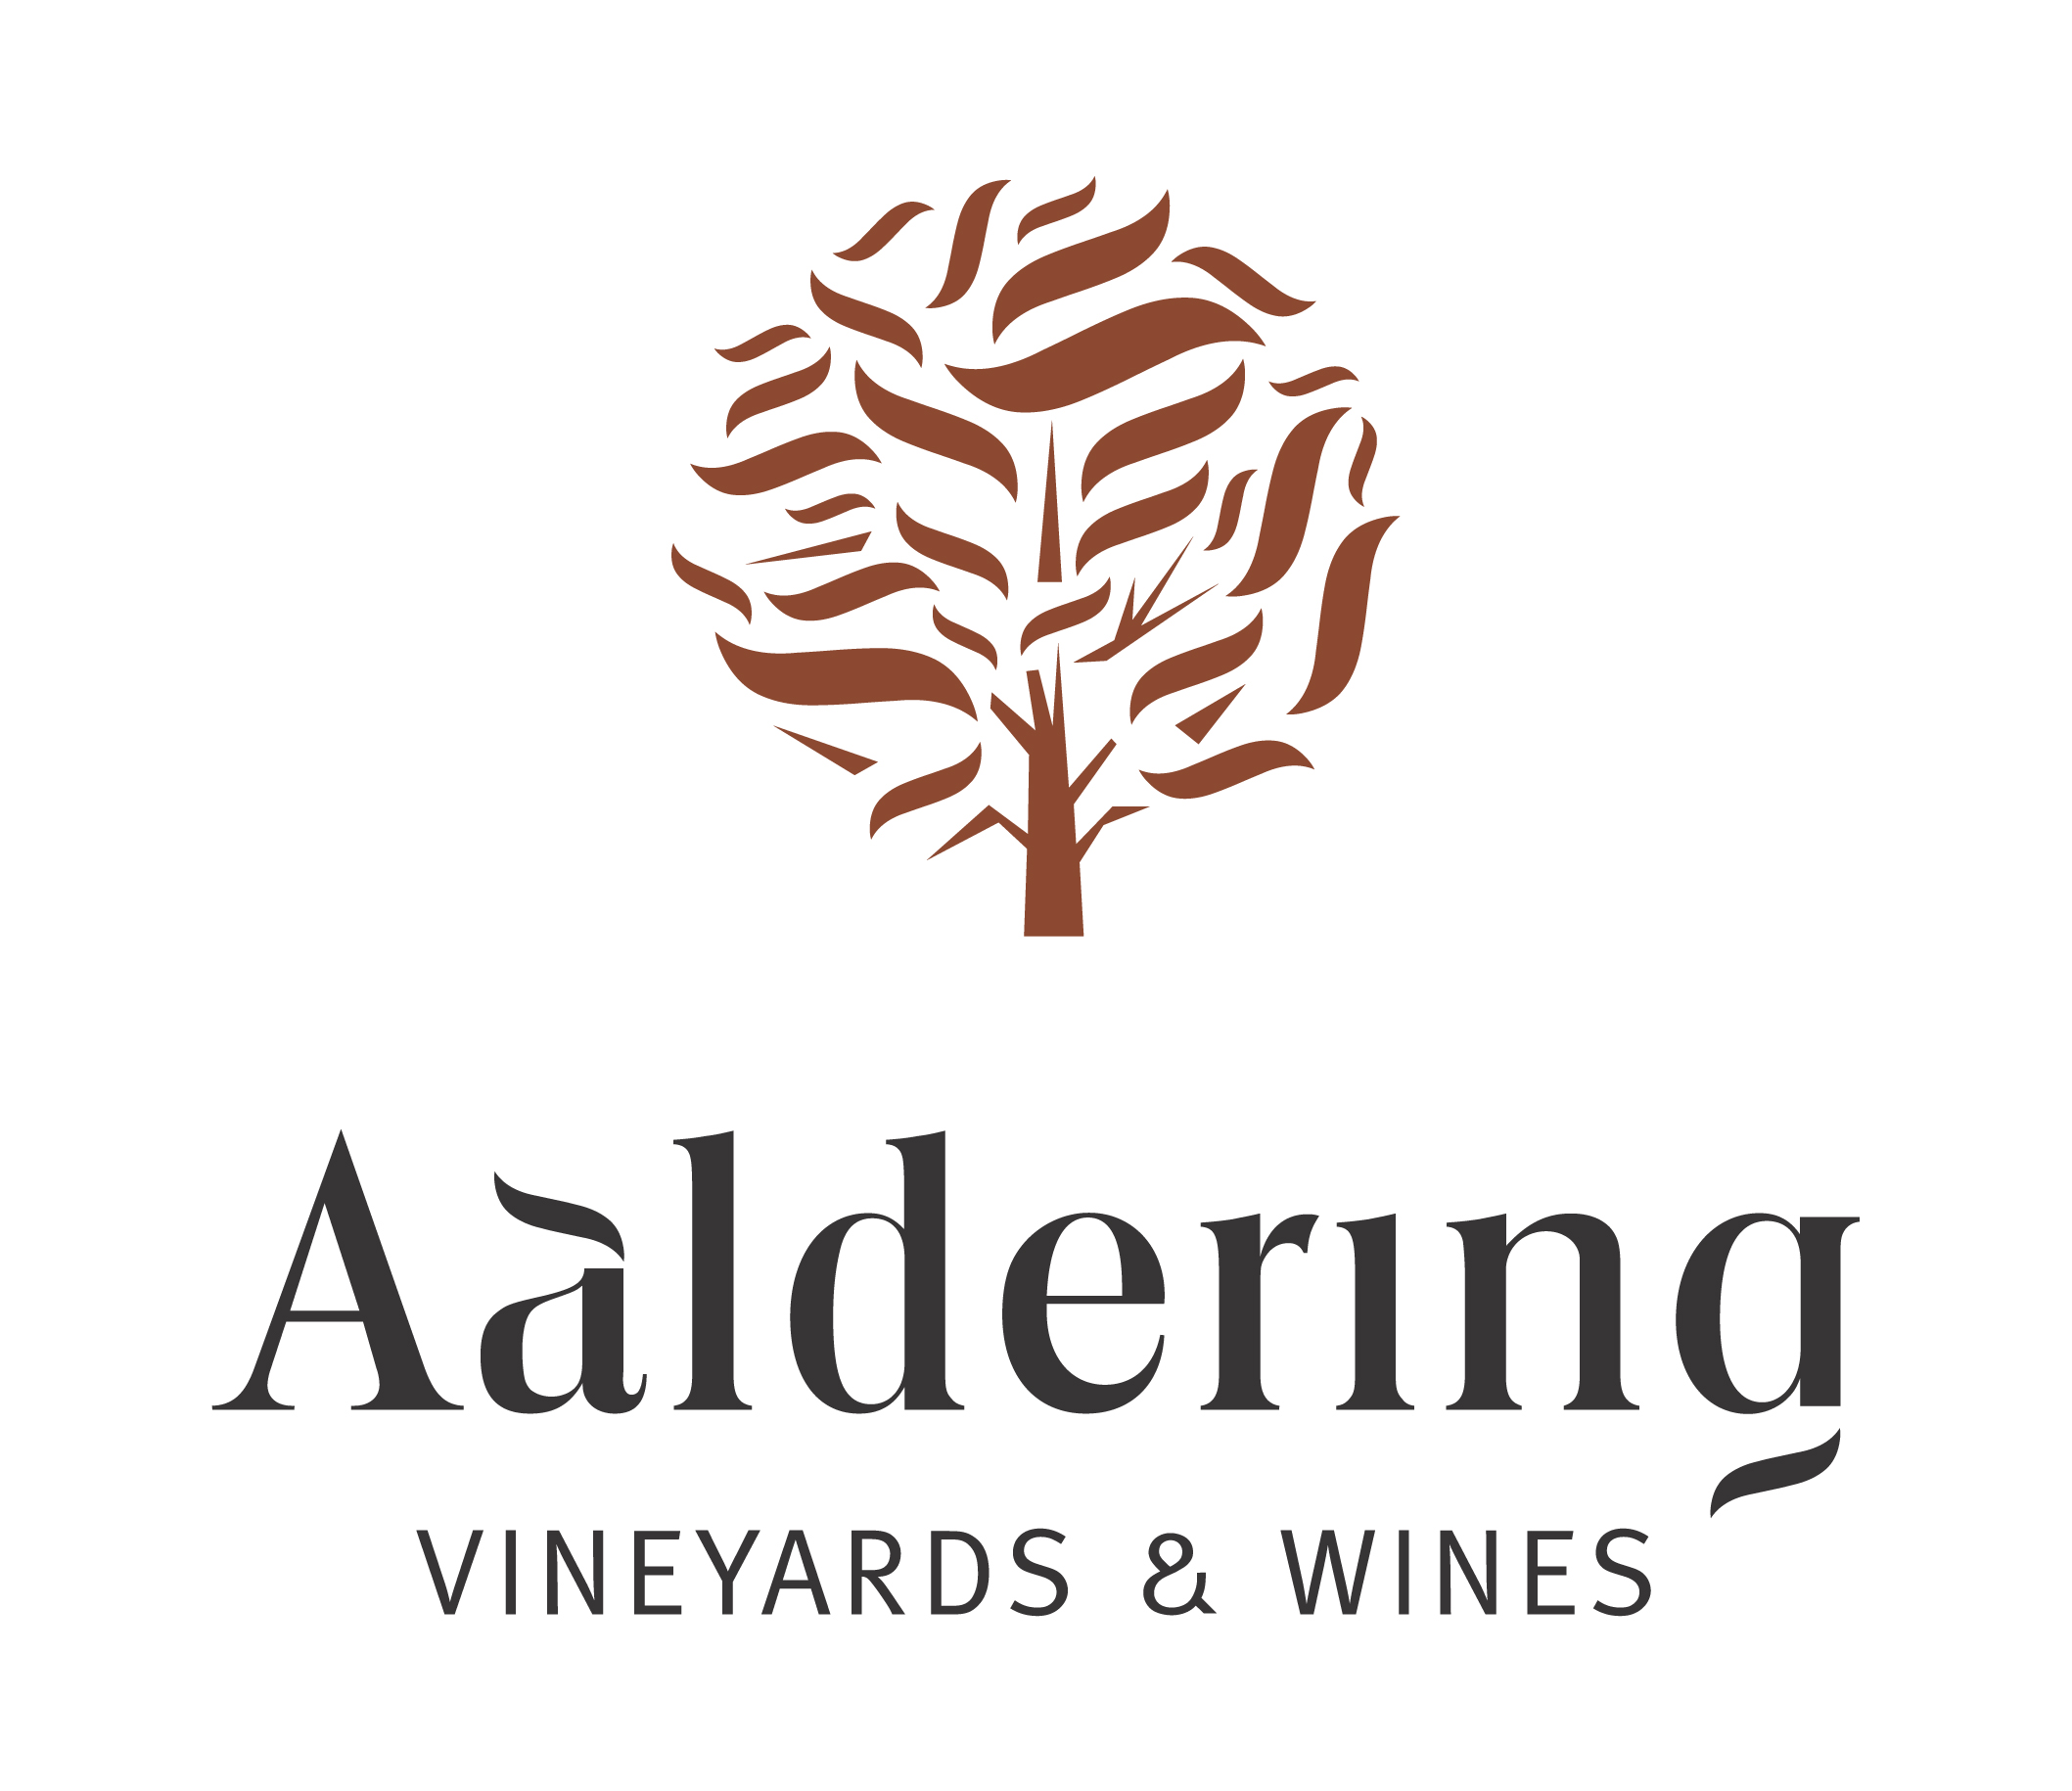 Aaldering Vineyards & Wines